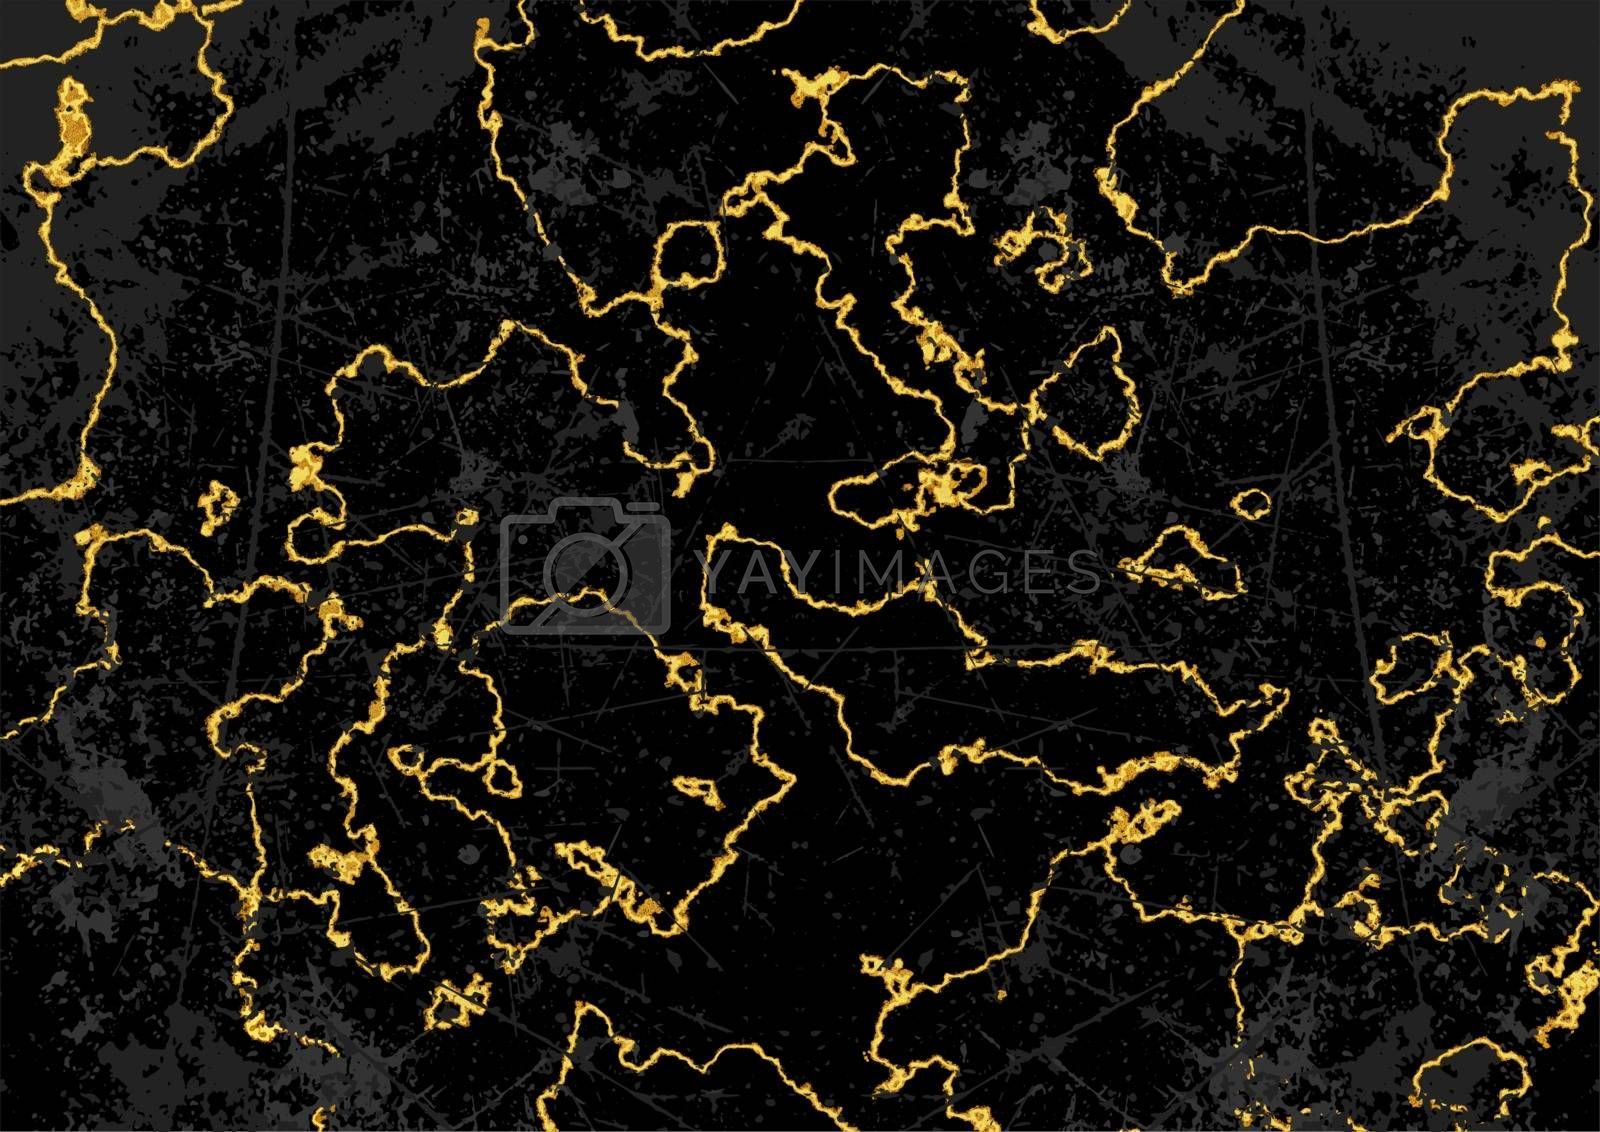 Black and Gold Marble Texture Background - Detailed Illustration with Surface Effect and Grunge Pattern, Vector Graphic